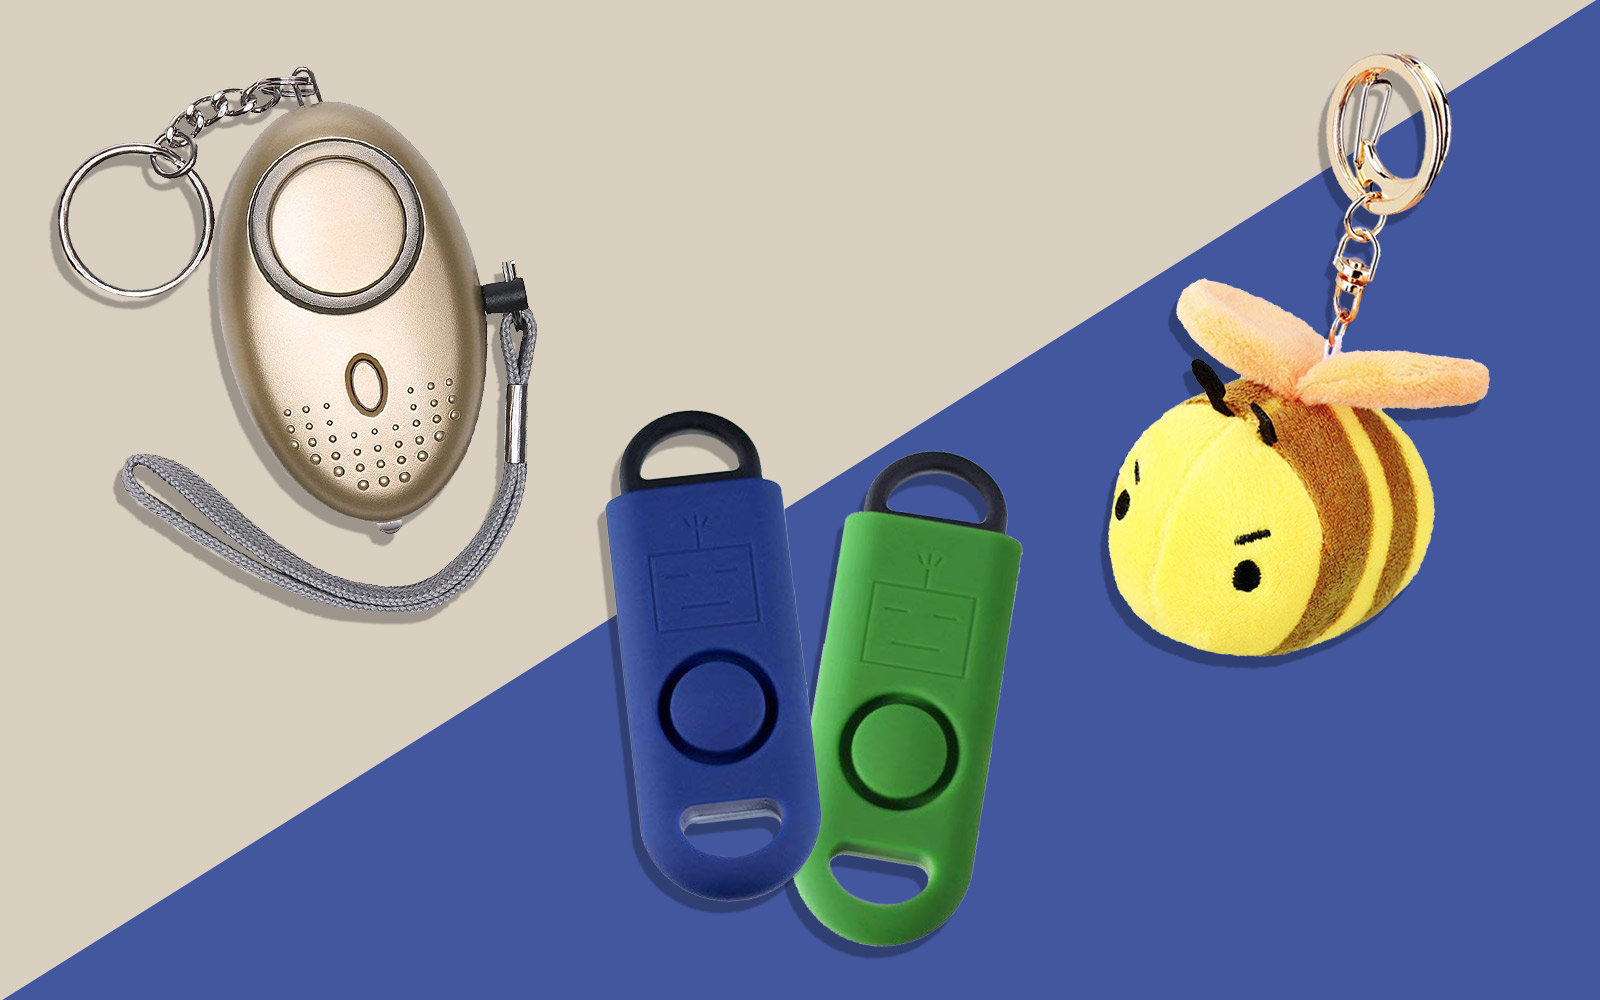 personal-safety-alarms-ALONEALARM0918.jpg